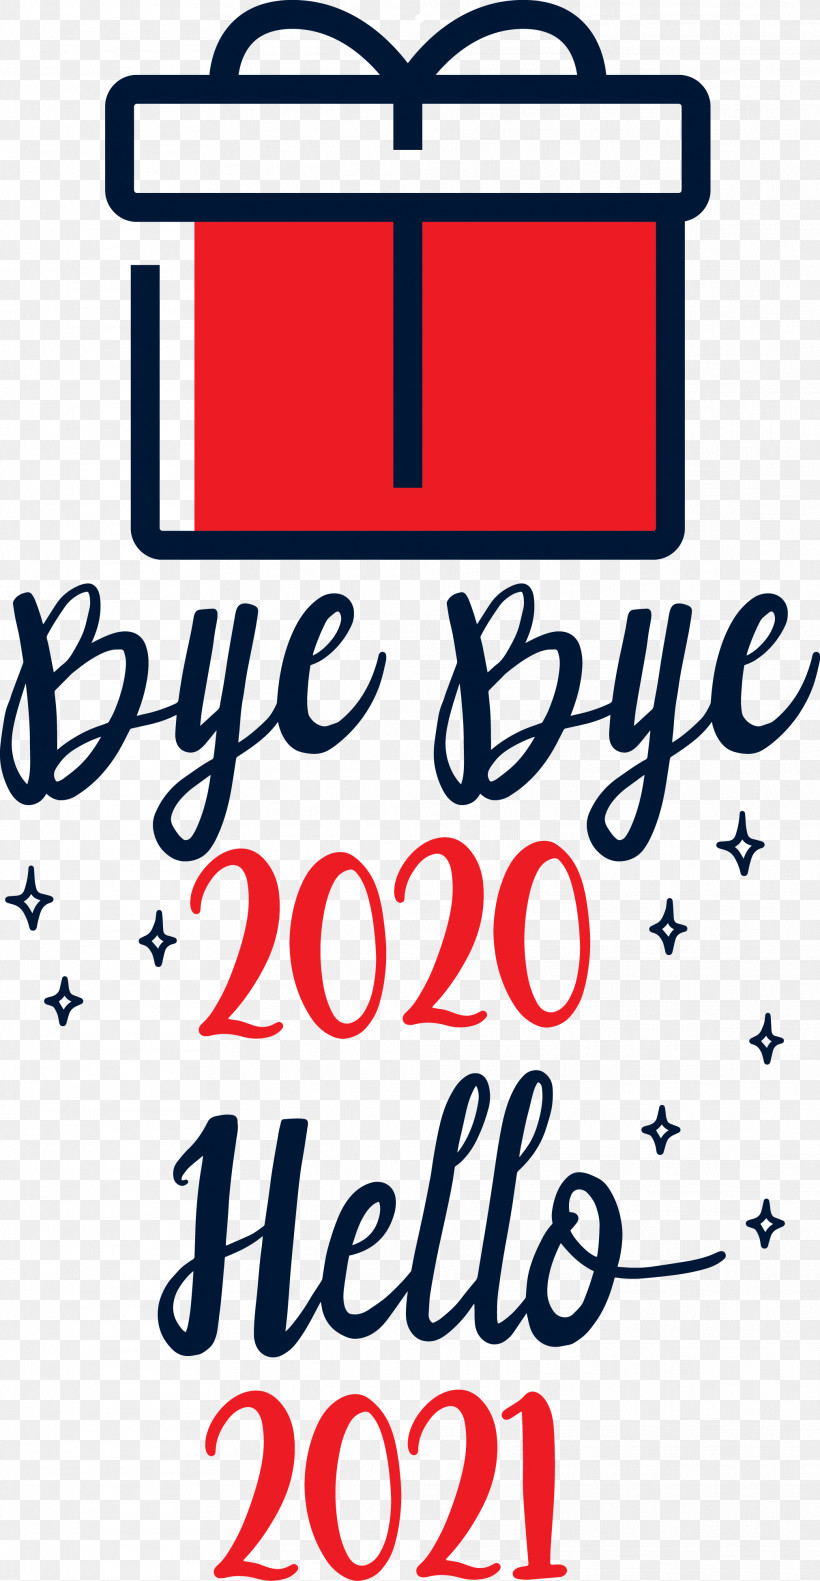 Hello 2021 Year Bye Bye 2020 Year, PNG, 2022x3900px, 2019, Hello 2021 Year, Abstract Art, Animation, Bye Bye 2020 Year Download Free